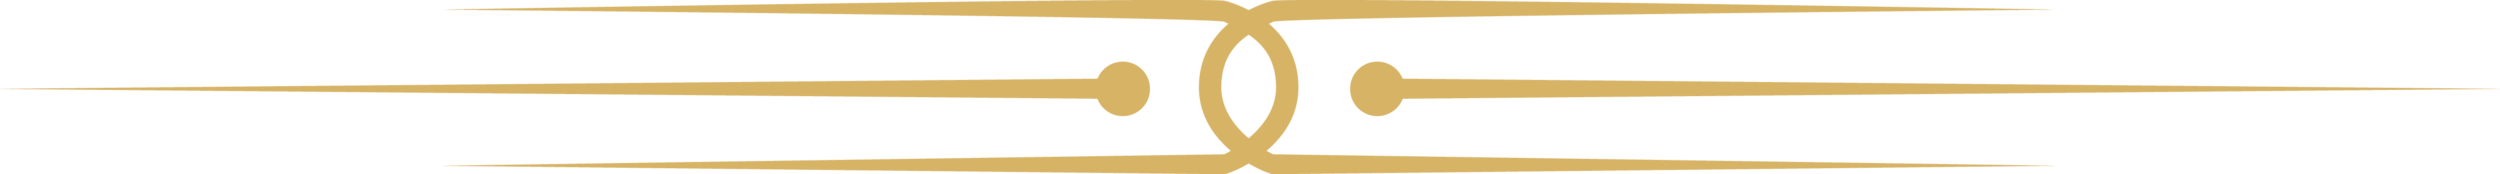 Sirmon_Ornament_19_gold_updated.png